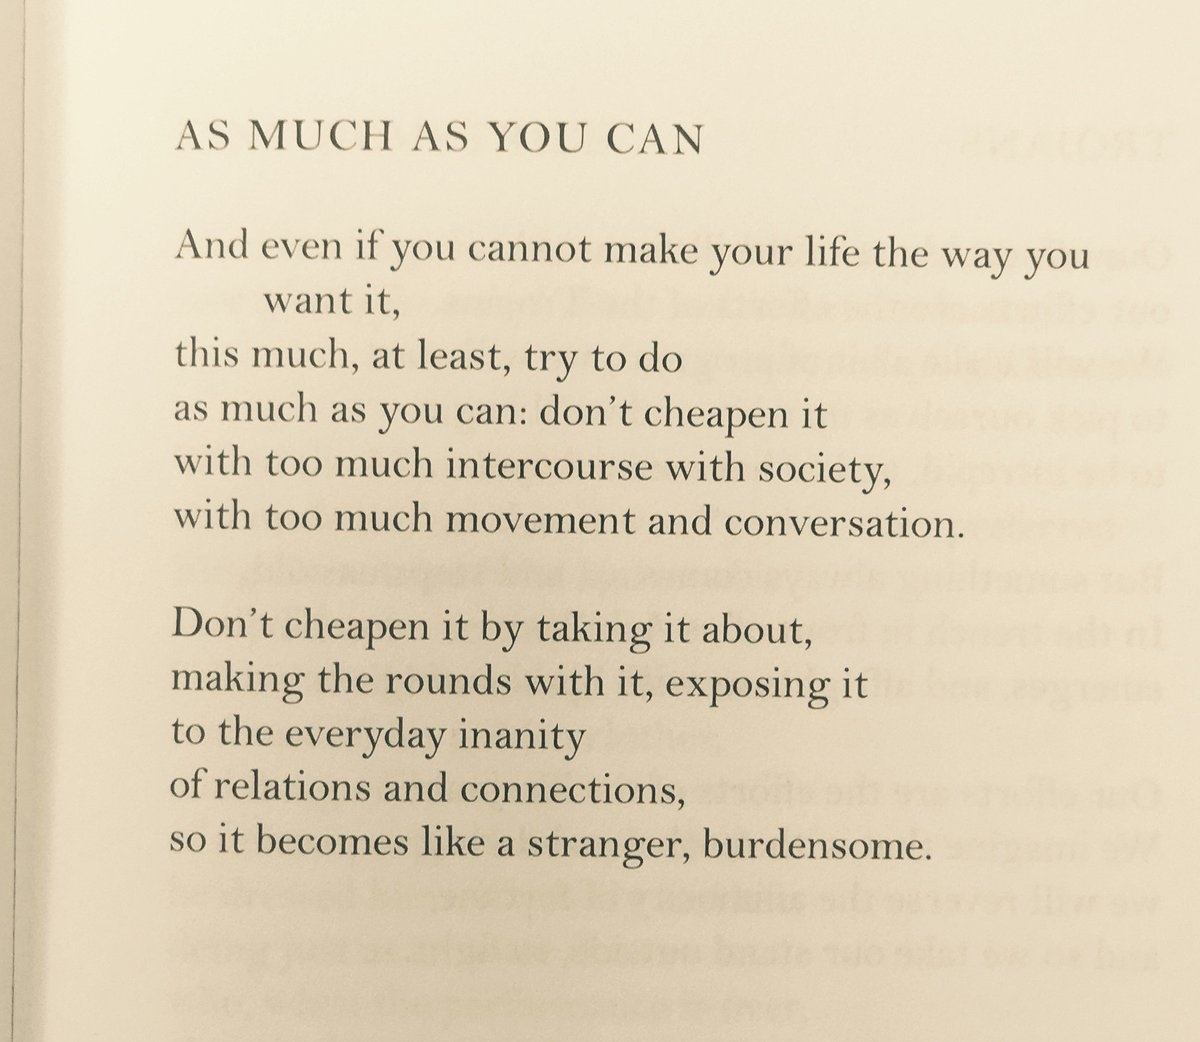 """""""don't cheapen it.""""  C. P. Cavafy, As Much As You Can, translated by @DAMendelsohnNYC   #mondaythoughts <br>http://pic.twitter.com/TxtvDWtwtV"""